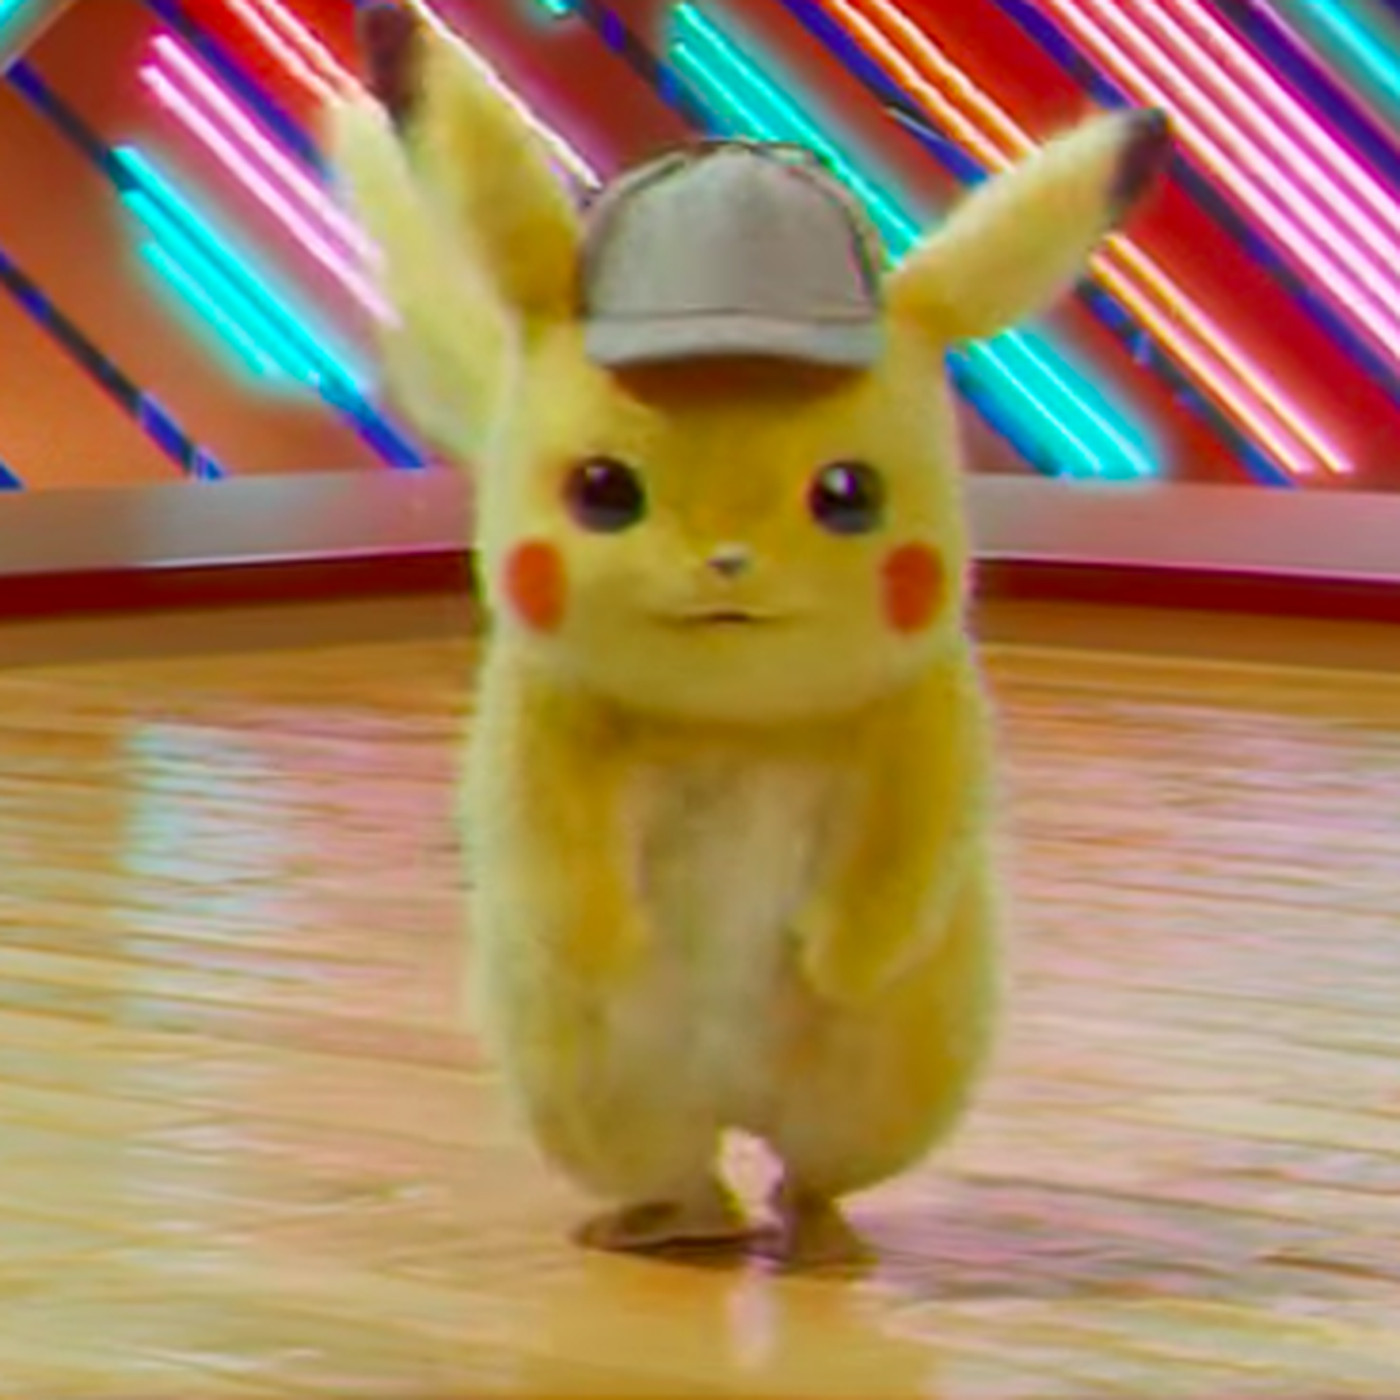 Detective Pikachu Youtube Leak Is An Elaborate Troll From Warner